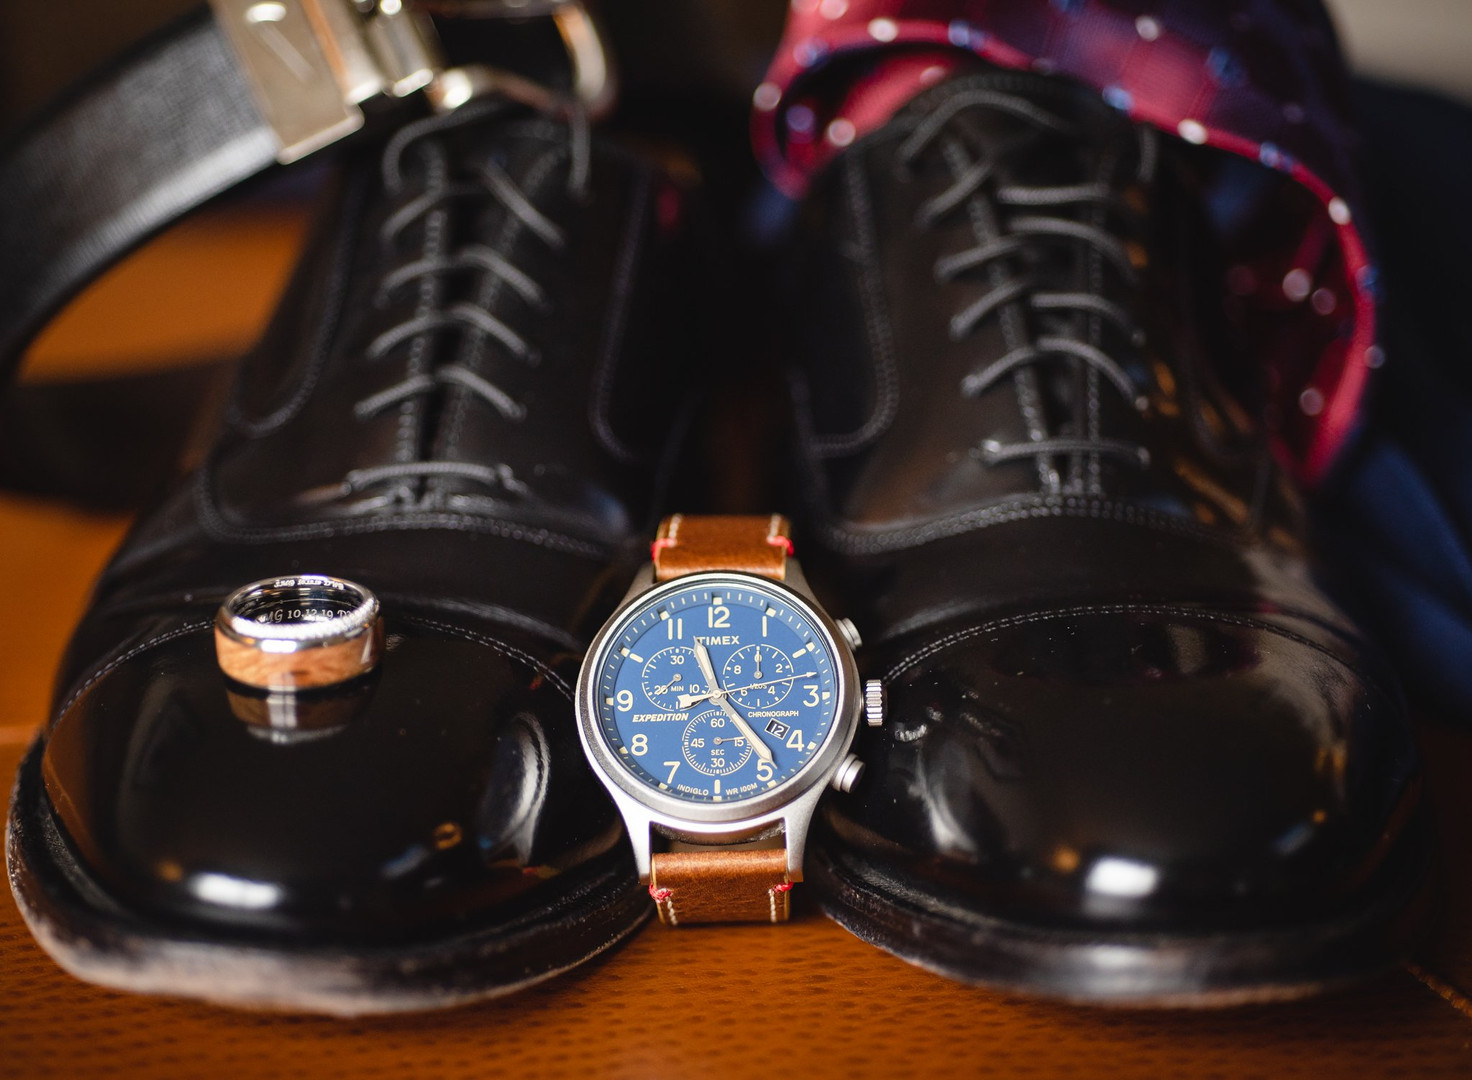 groom's details wedding photo - shoes, watch and wedding rings